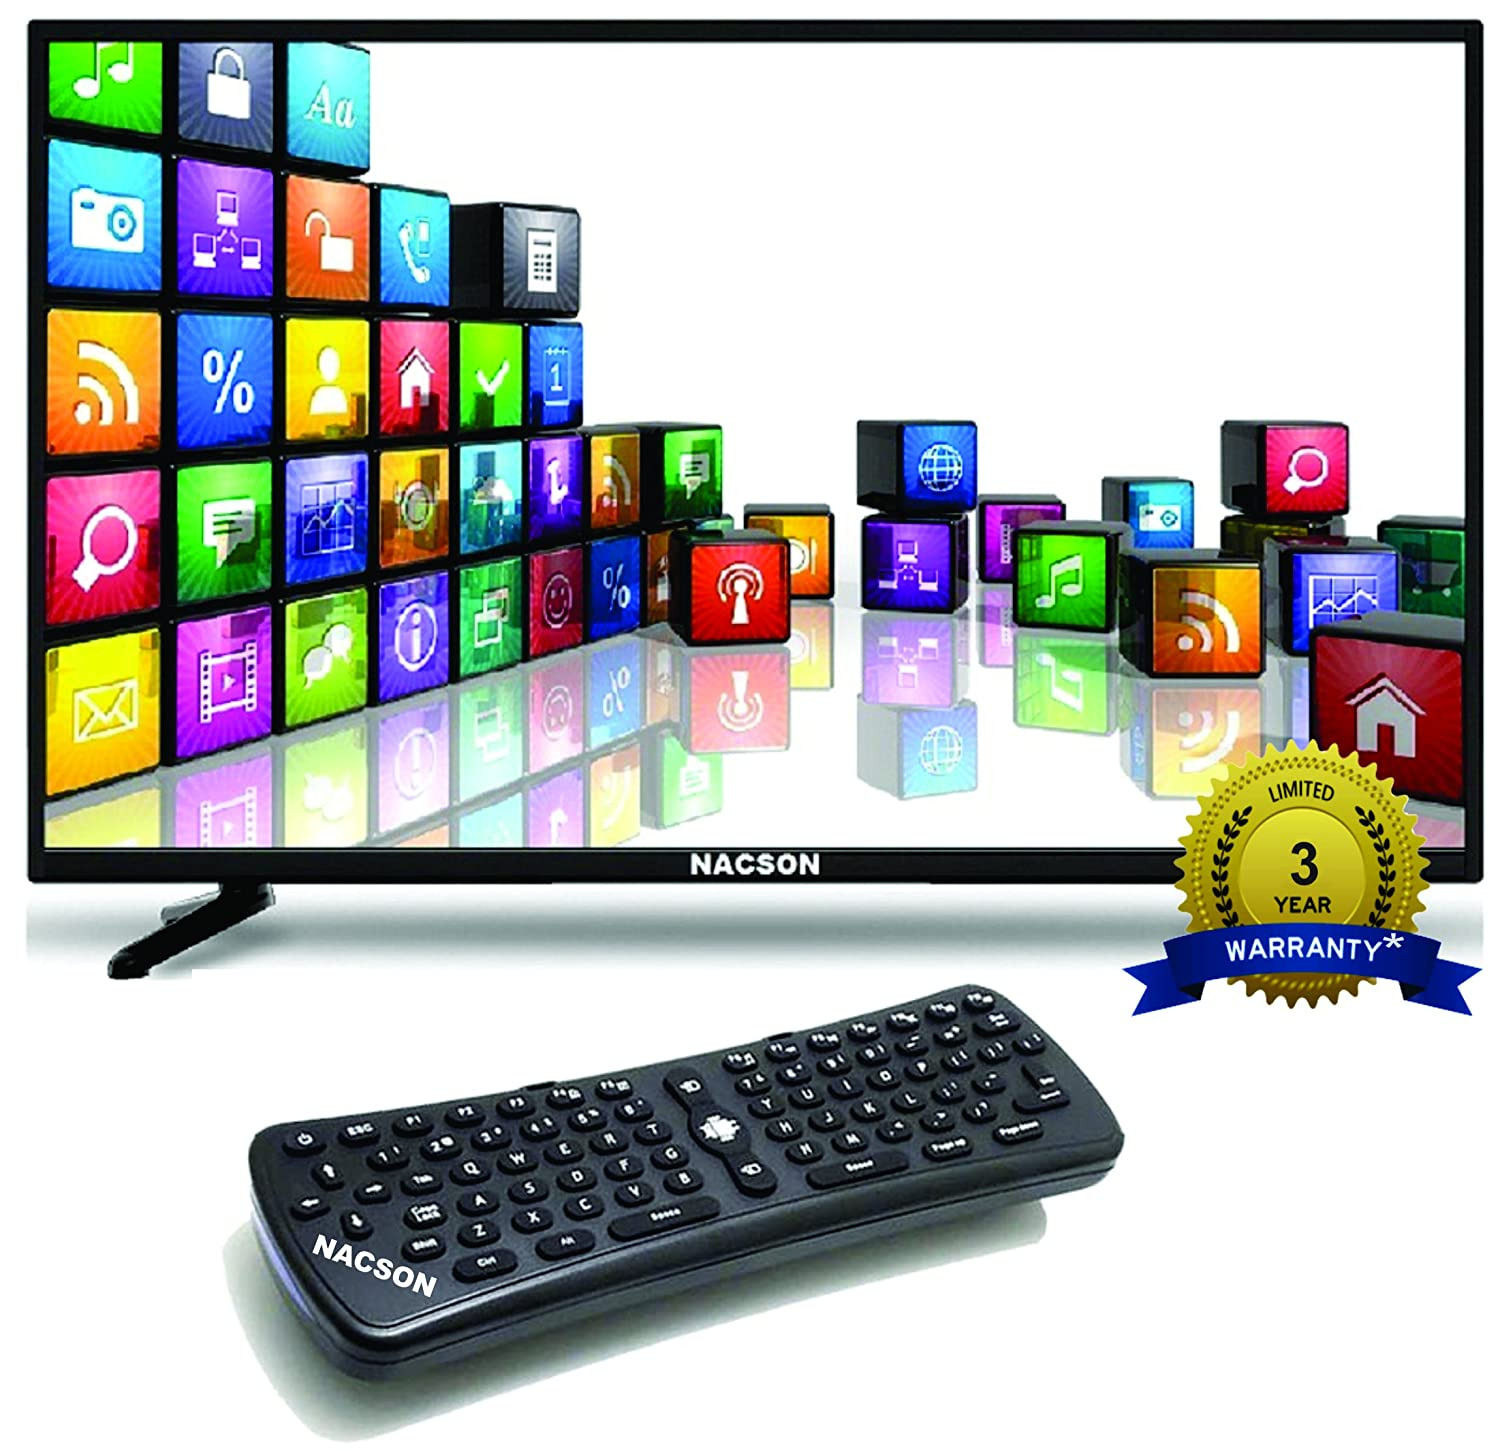 Best 40 inch LED TVs in India under 30000 - Nacson Ns4215-Smart Led Tv And Airfly Keyboard/Mouse